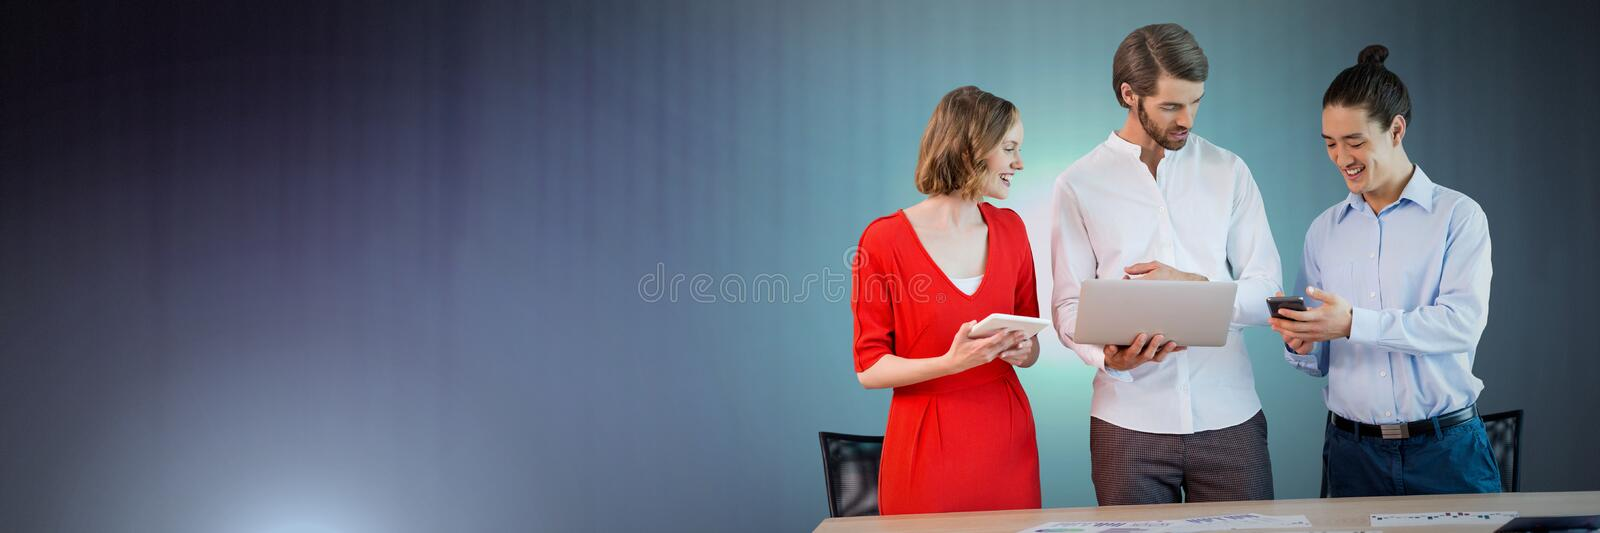 Business people working on laptop stock photo